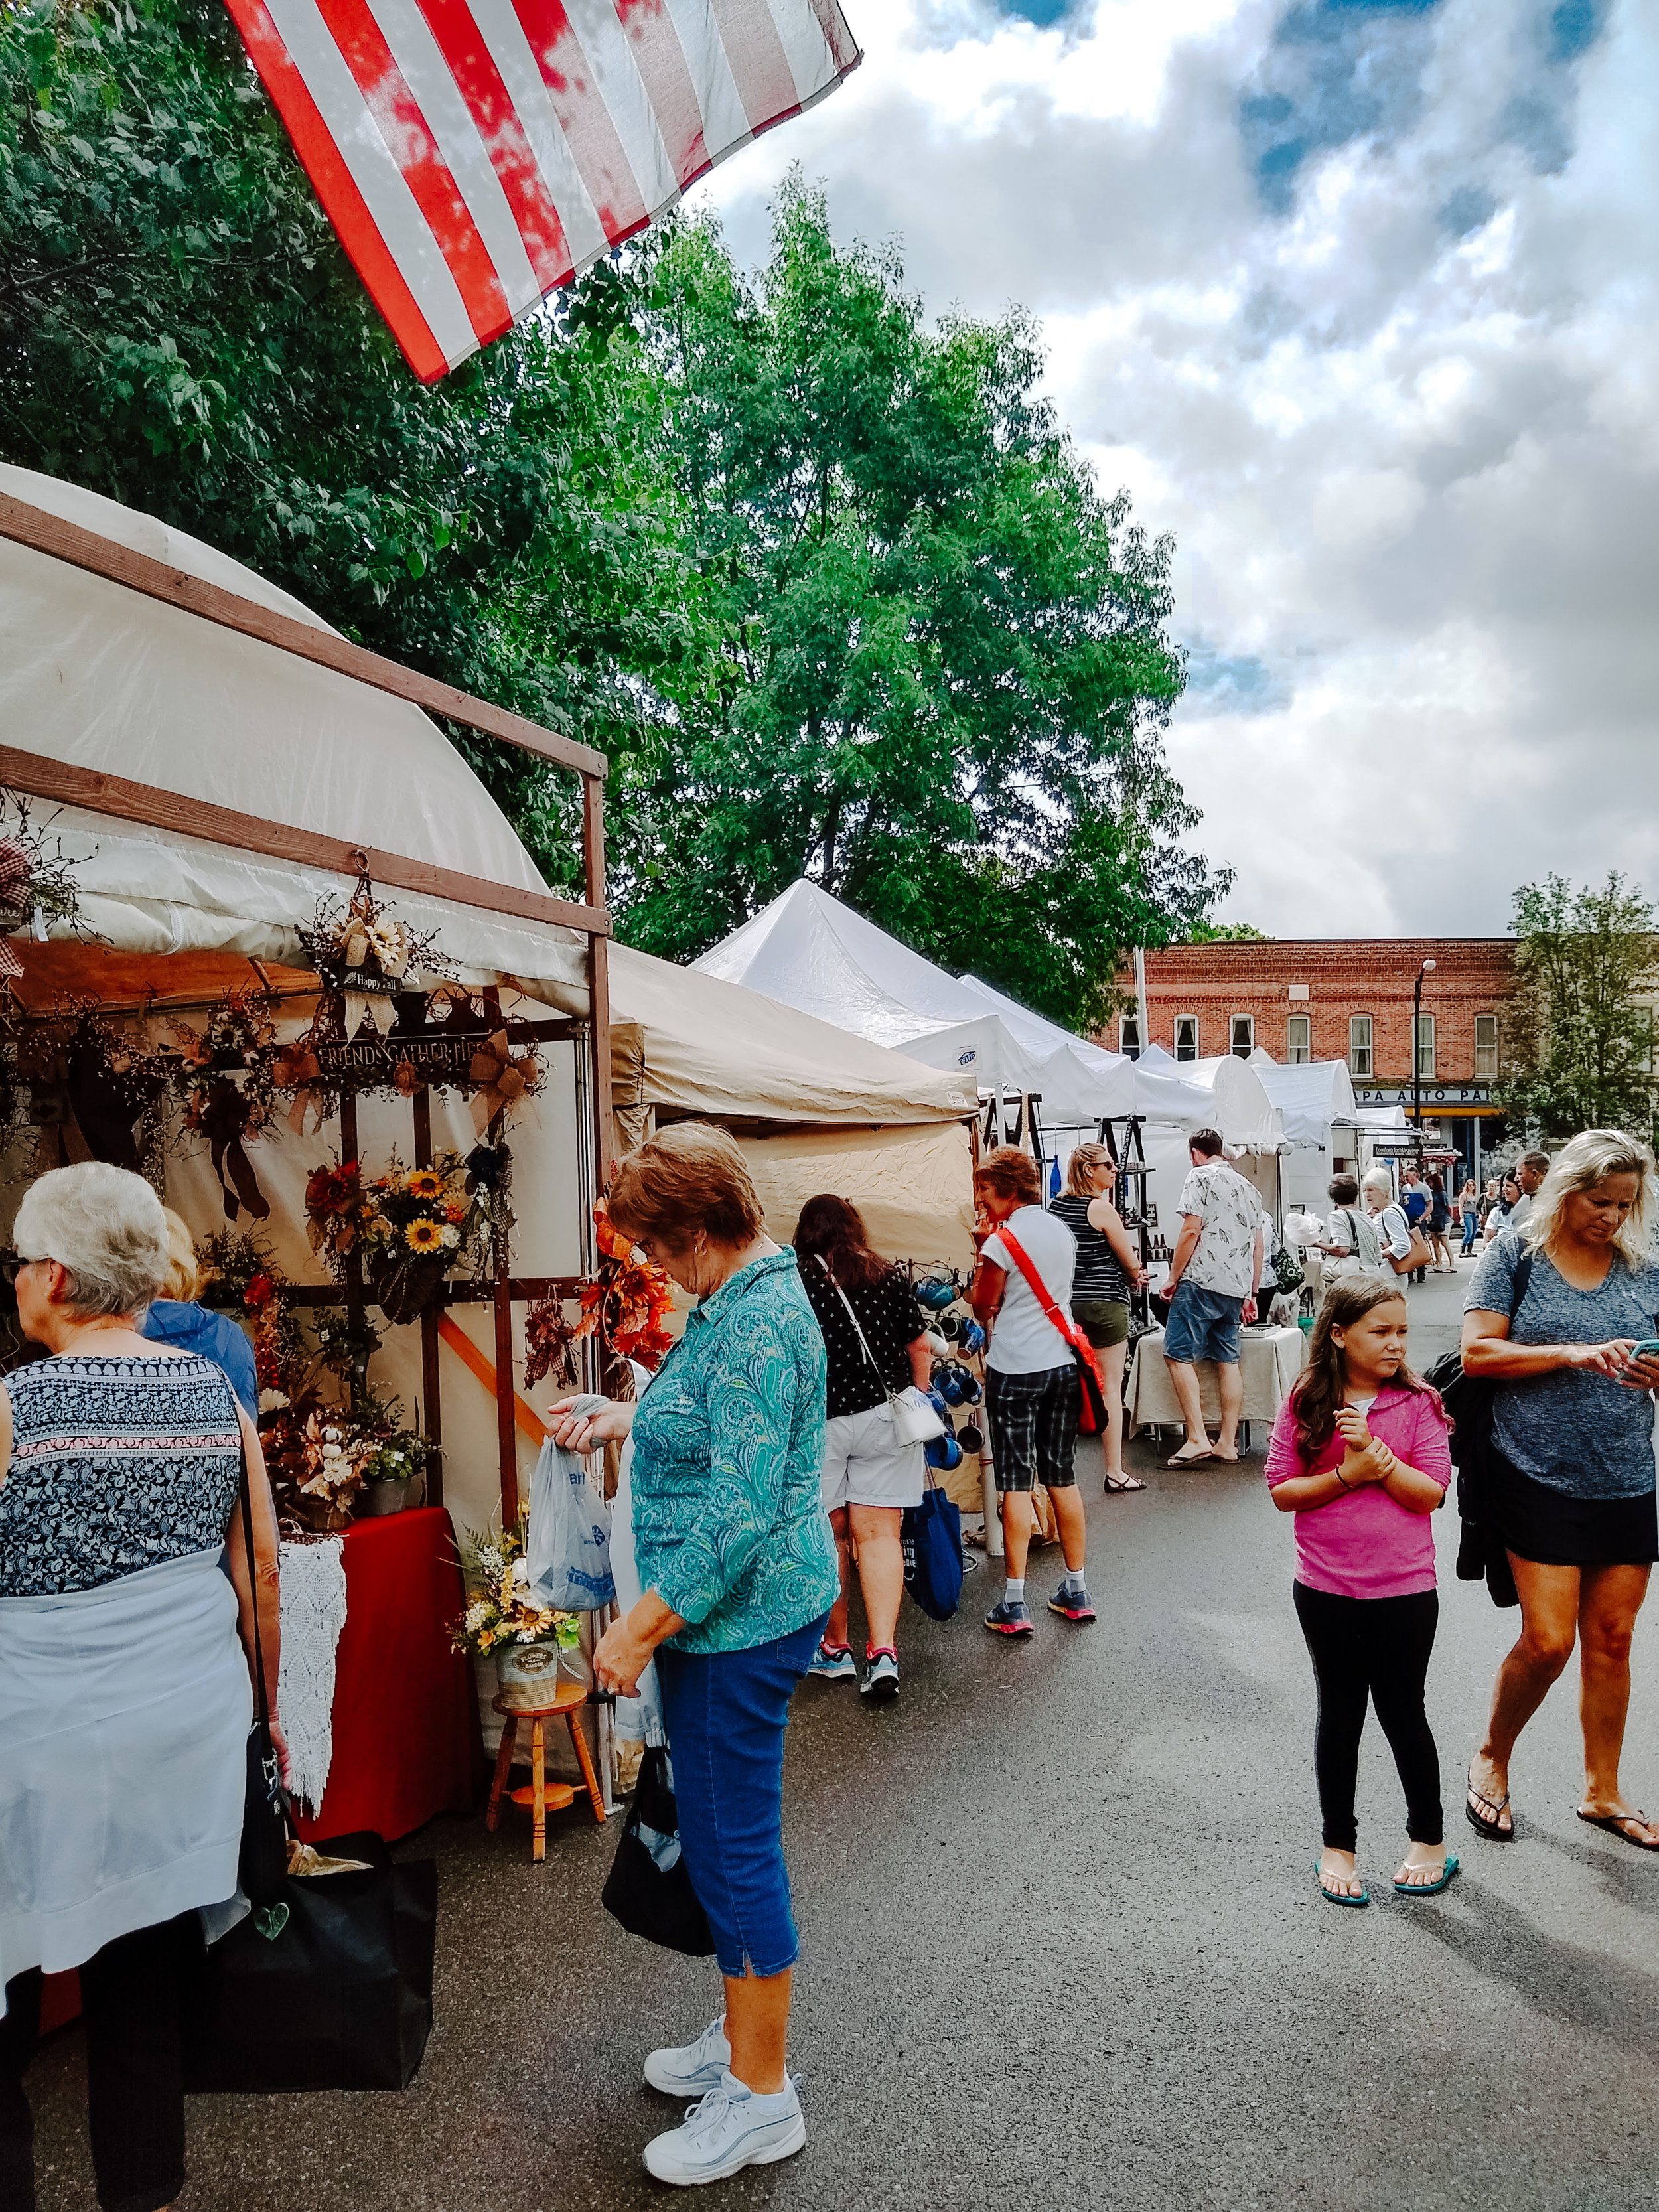 Discover 125+ unique craft vendors this weekend, August 17th & 18th!